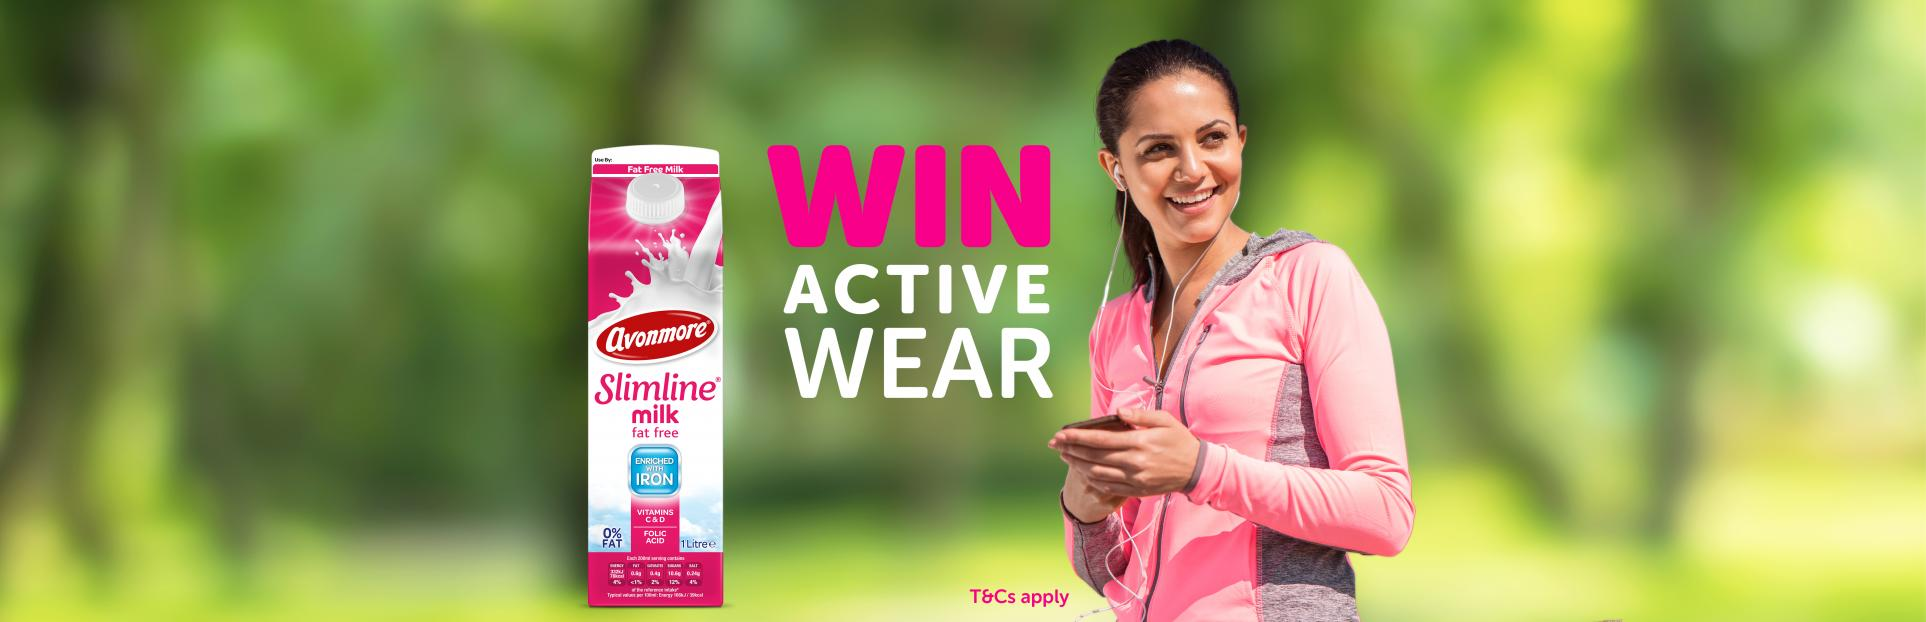 An image of win active wear with slimline